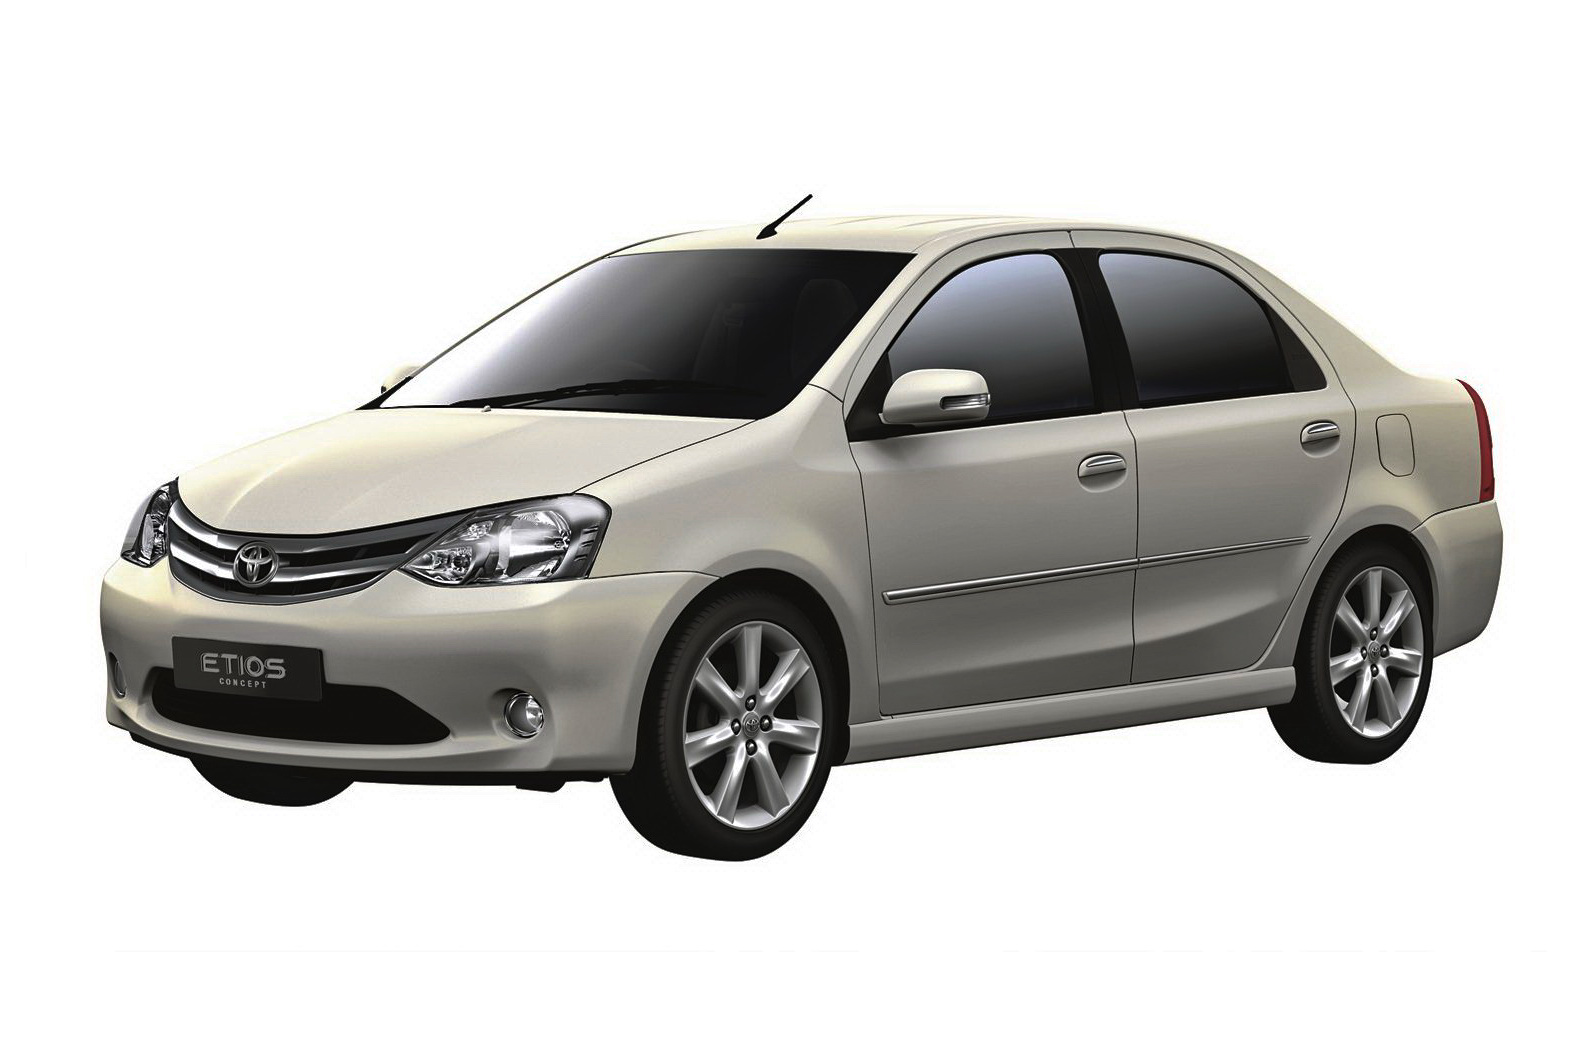 Toyota Etios Facing Booking Cancellations